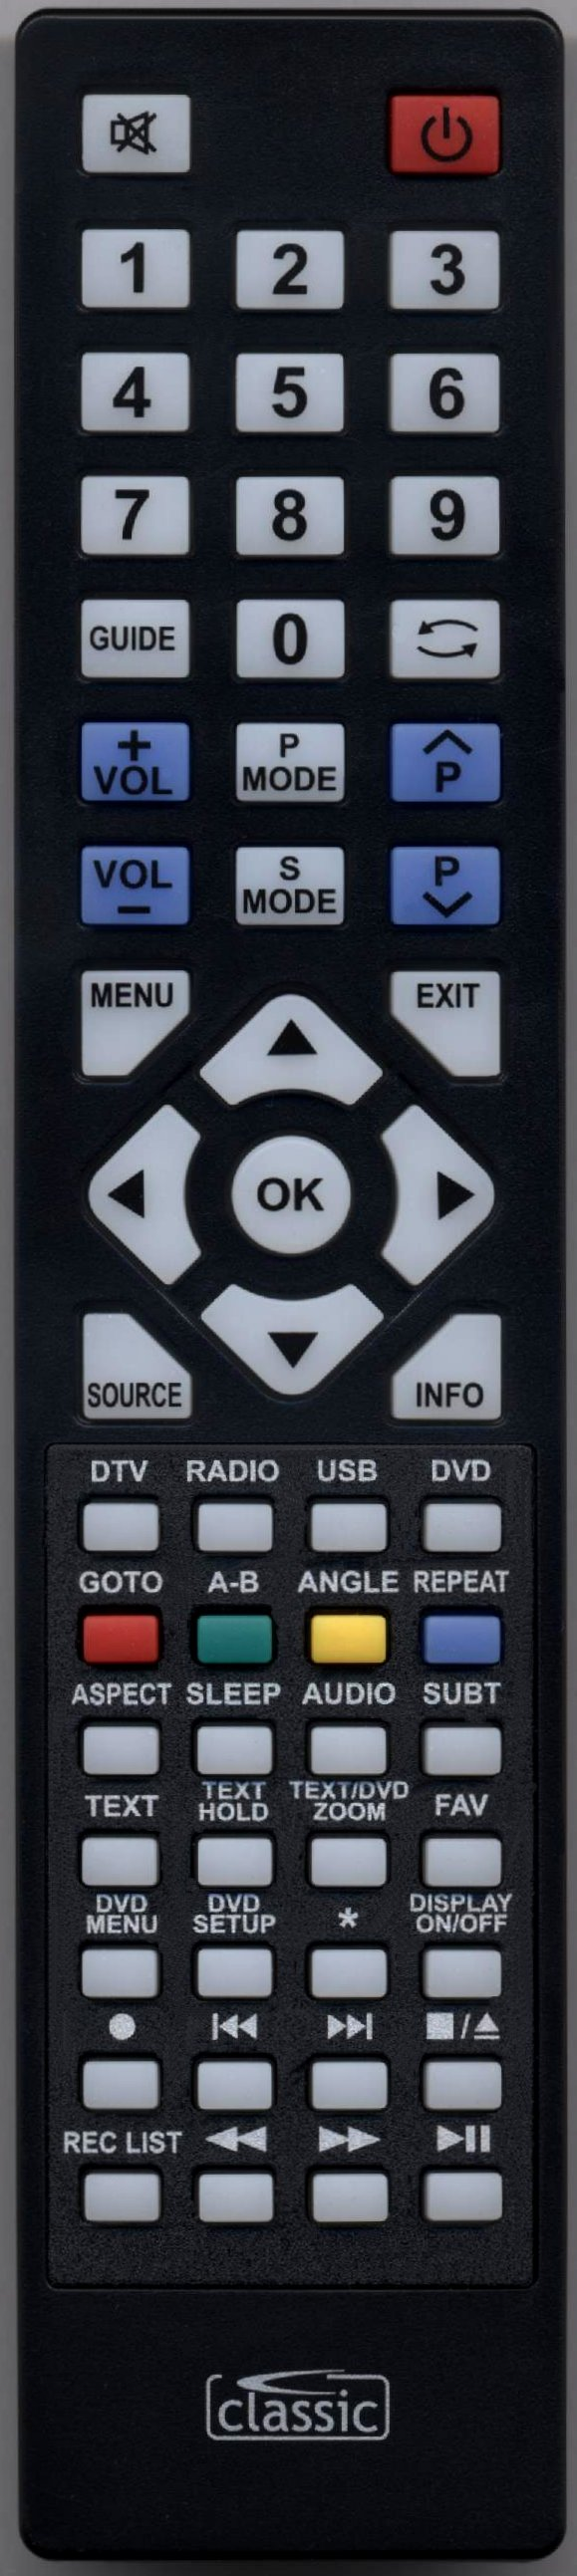 BLAUPUNKT 50/149Z-GB-5B2-FGKU-UK Remote Control Alternative